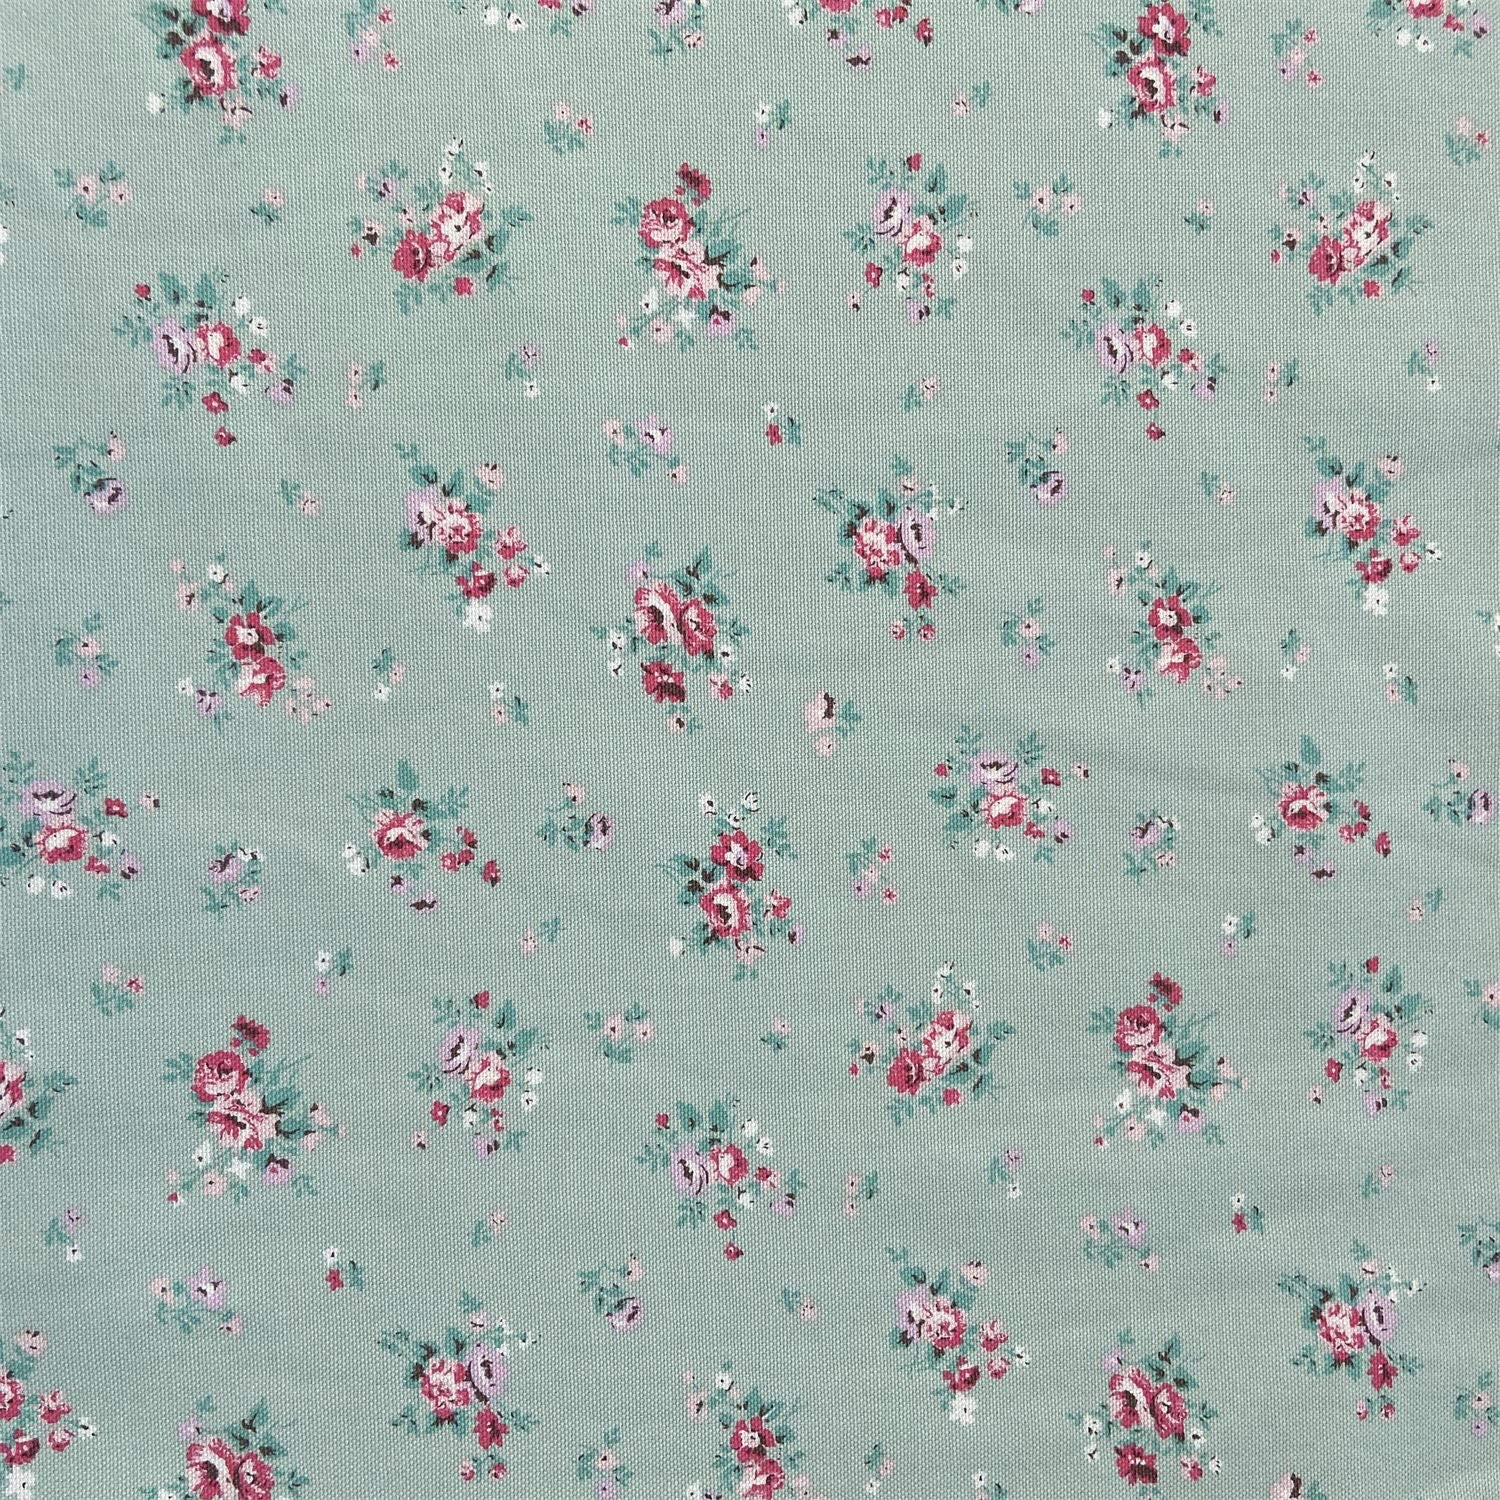 willikiva Printed Canvas Cotton UpholsteryFabricbyTheYard Indoor Outdoor Fabric for Sewing 36